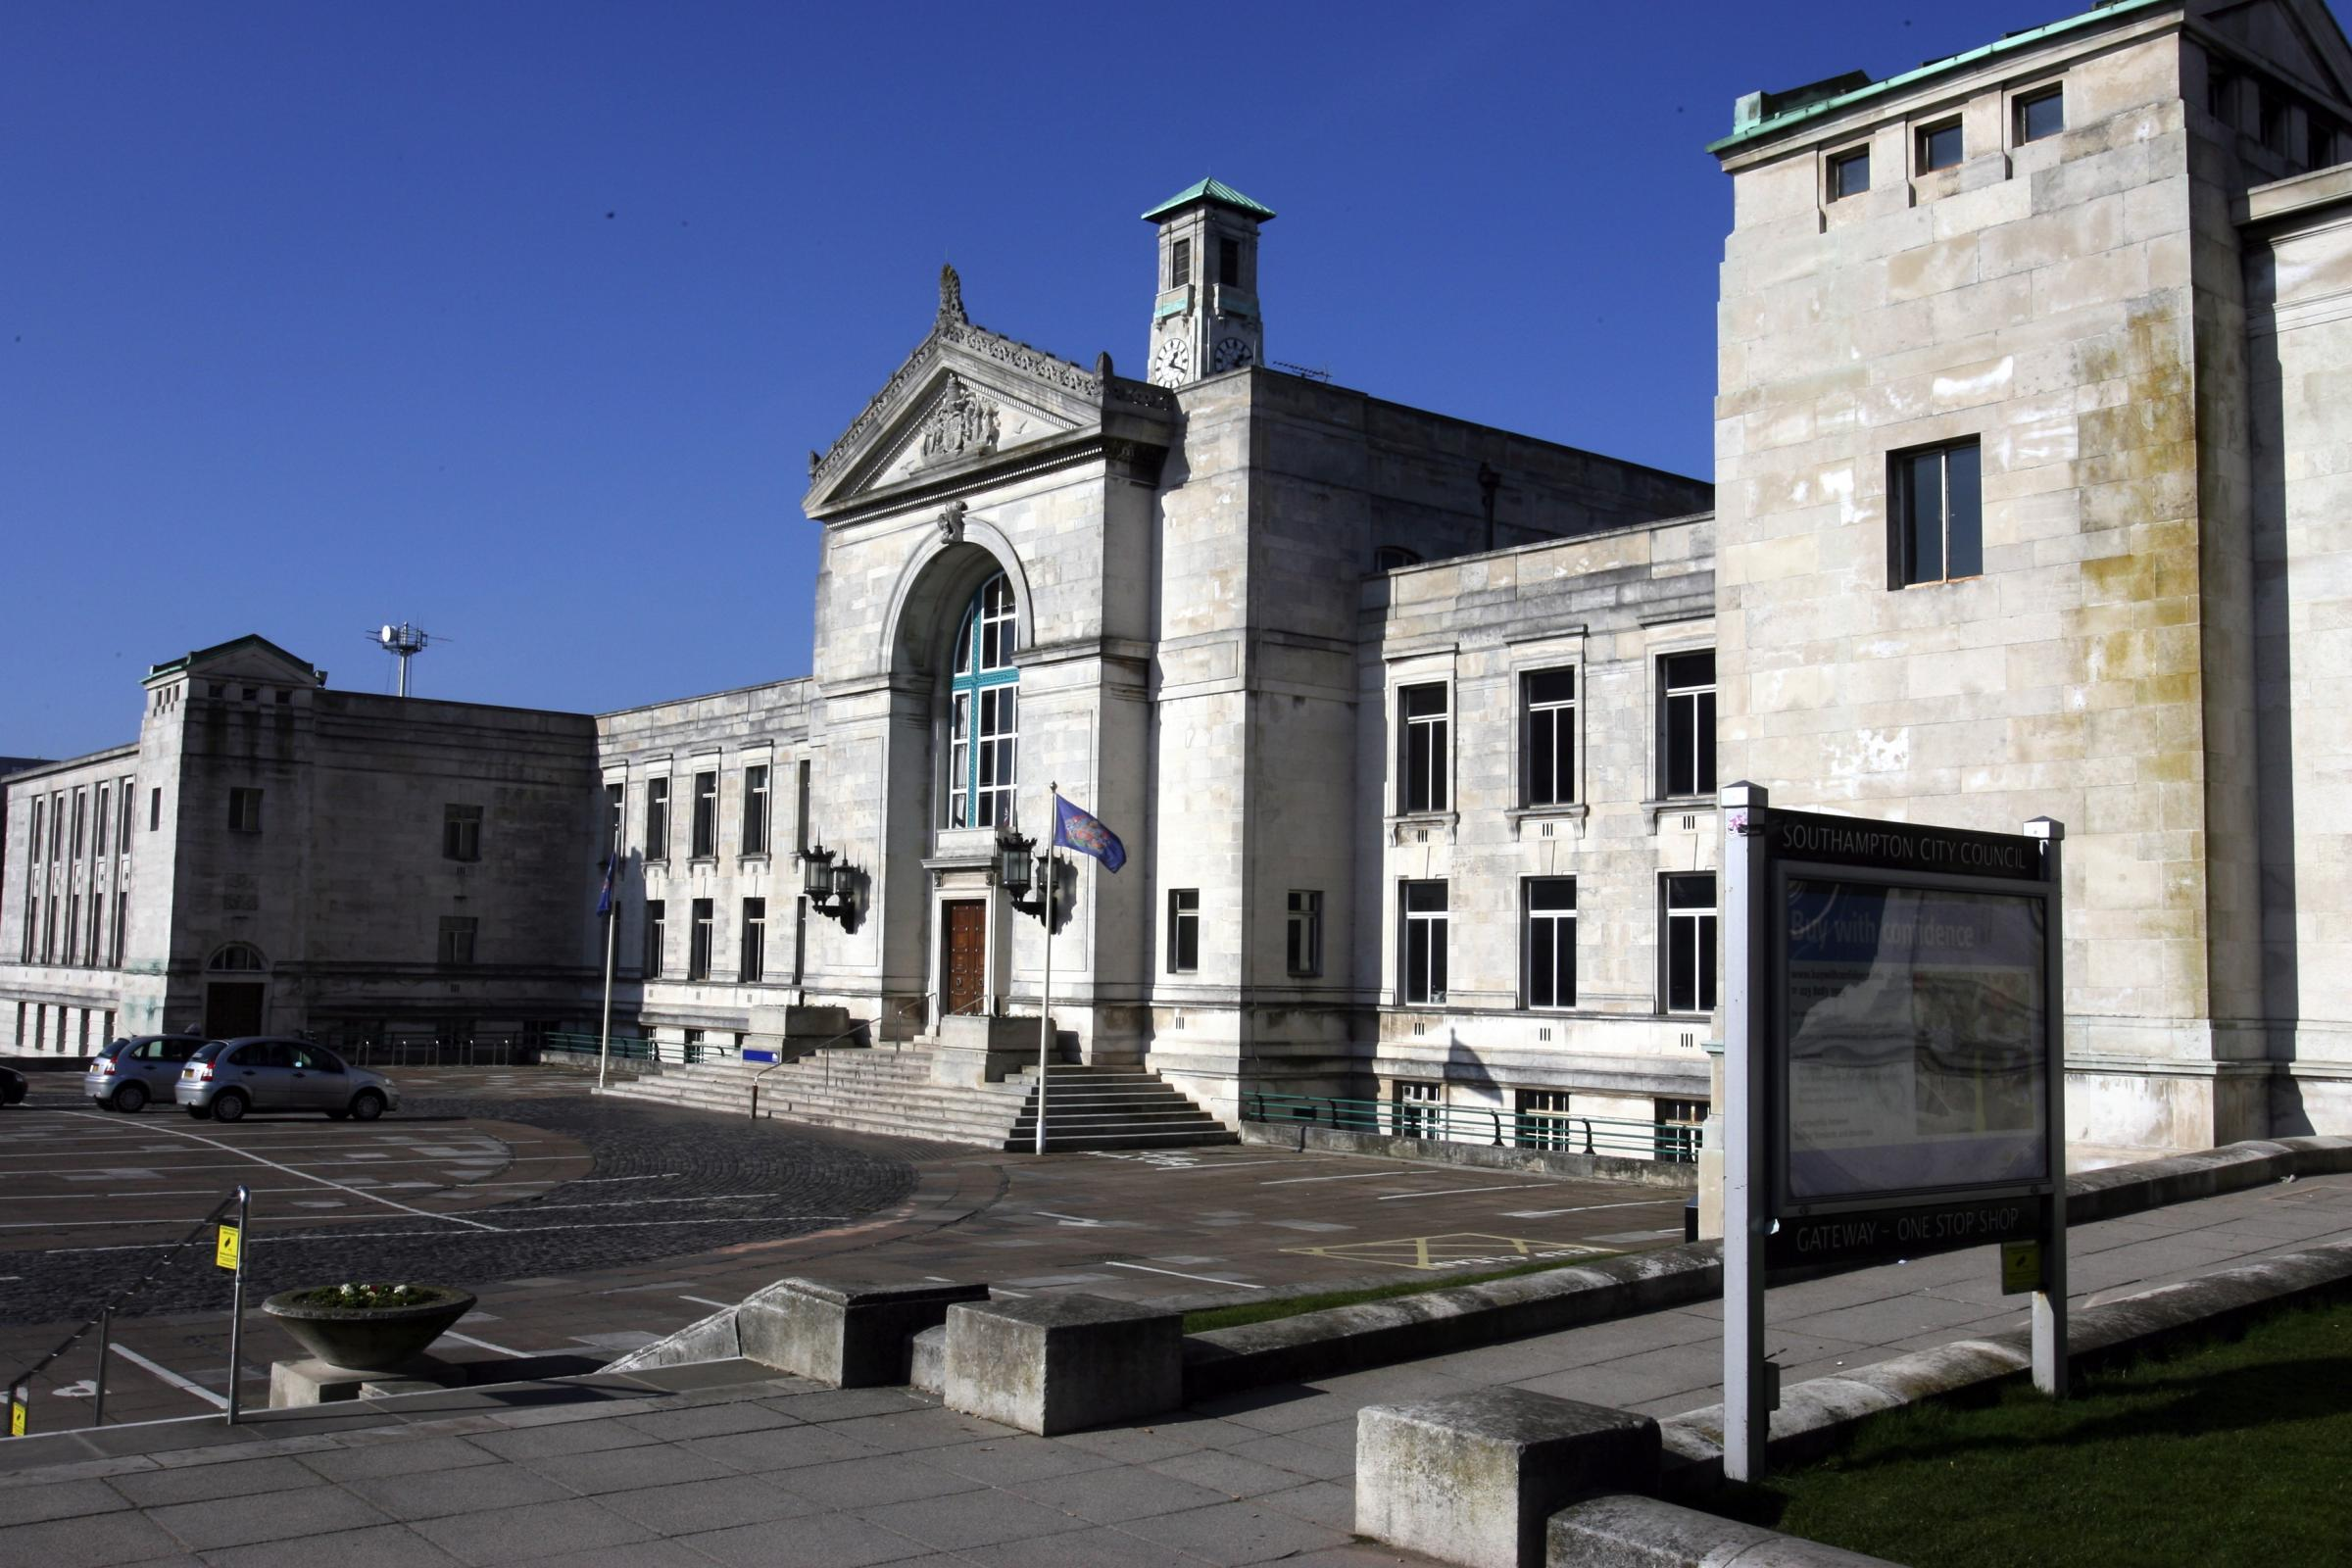 £14m cuts approved by Southampton City Council described as 'hatchet job' by Tories